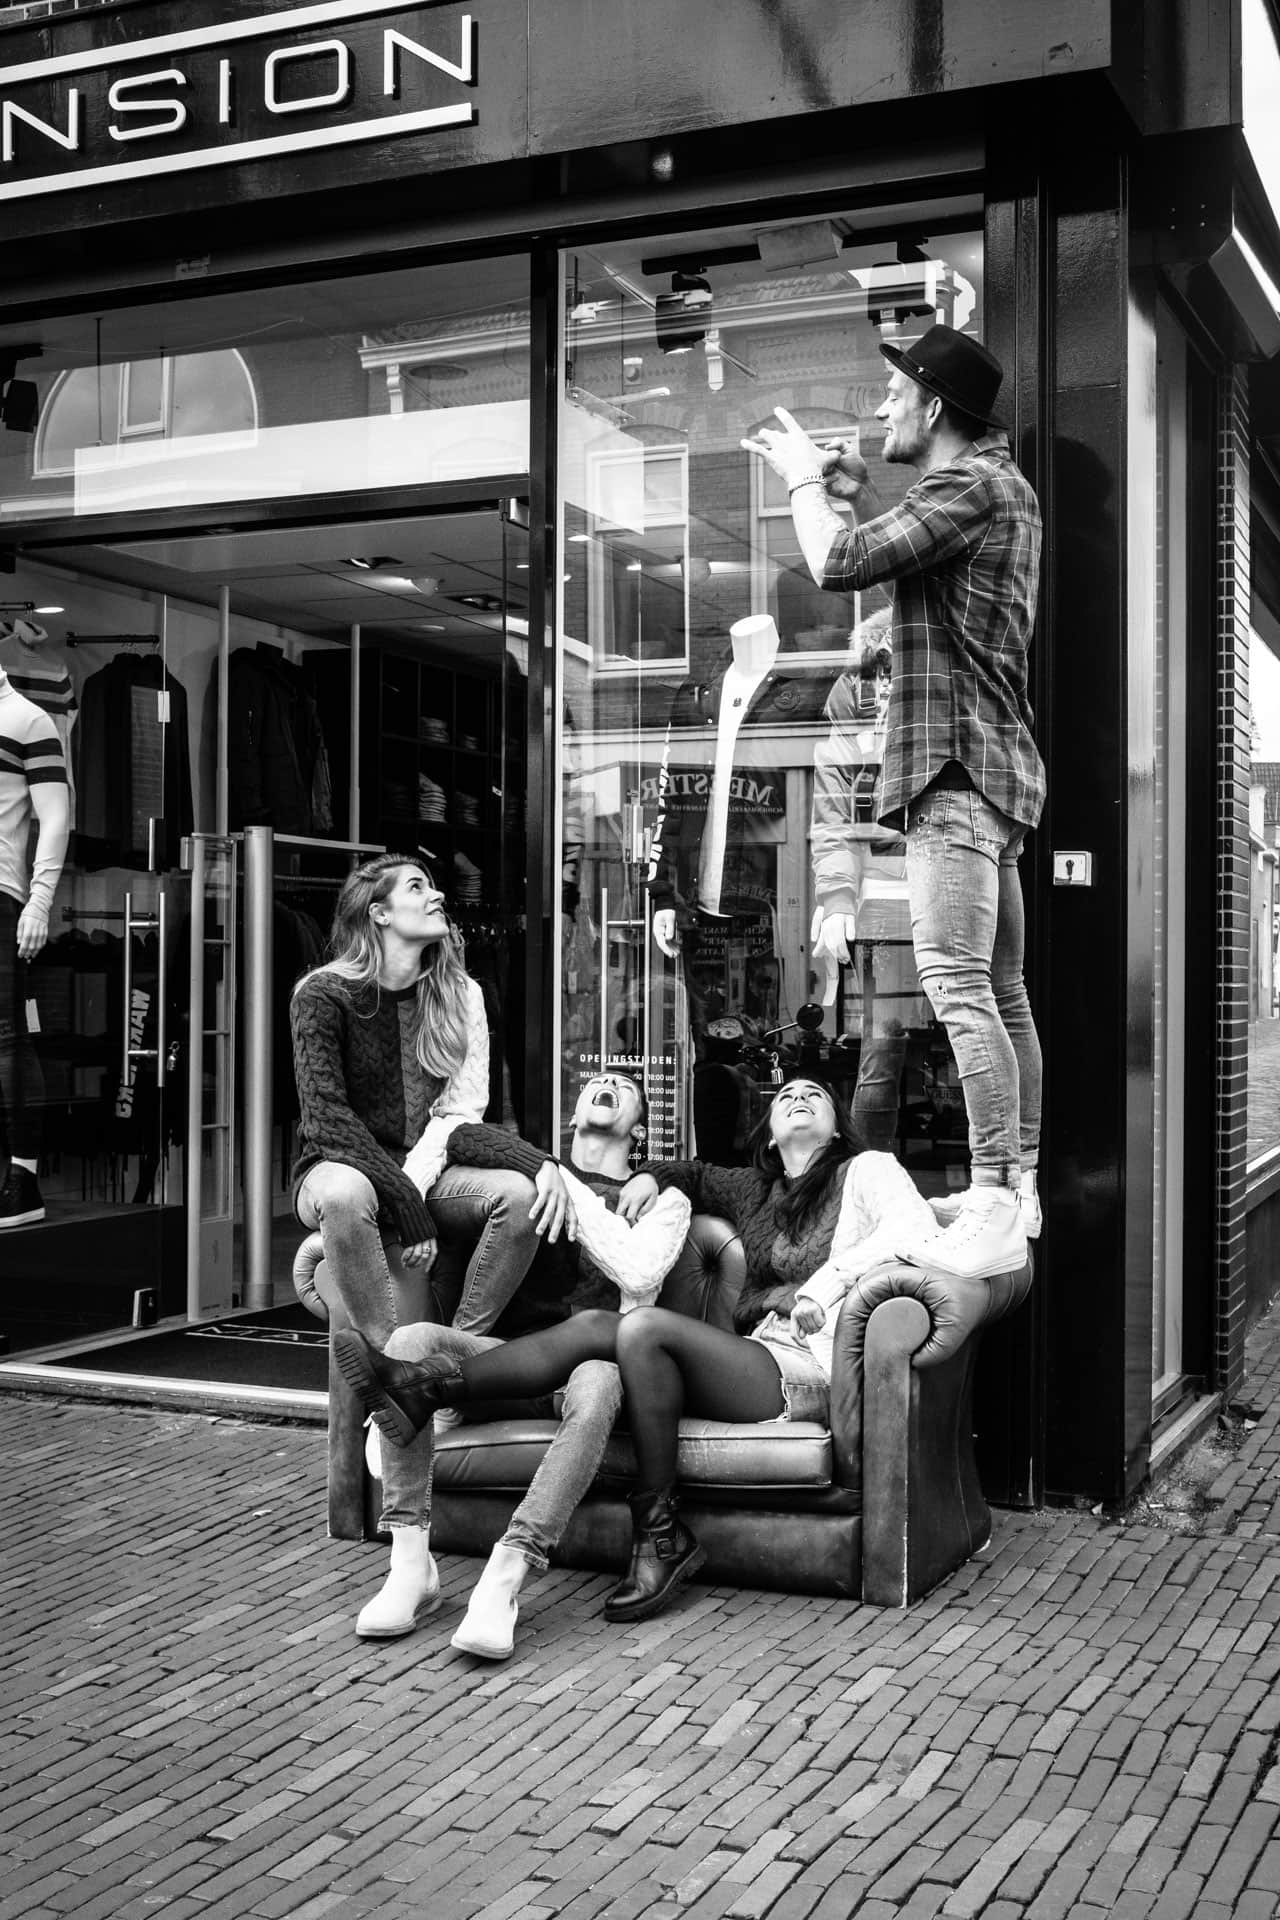 Standing on the armrest of the couch. Tim was photographing the next image for his instagram account. 18 Oktober 2018, Alkmaar, The Netherlands